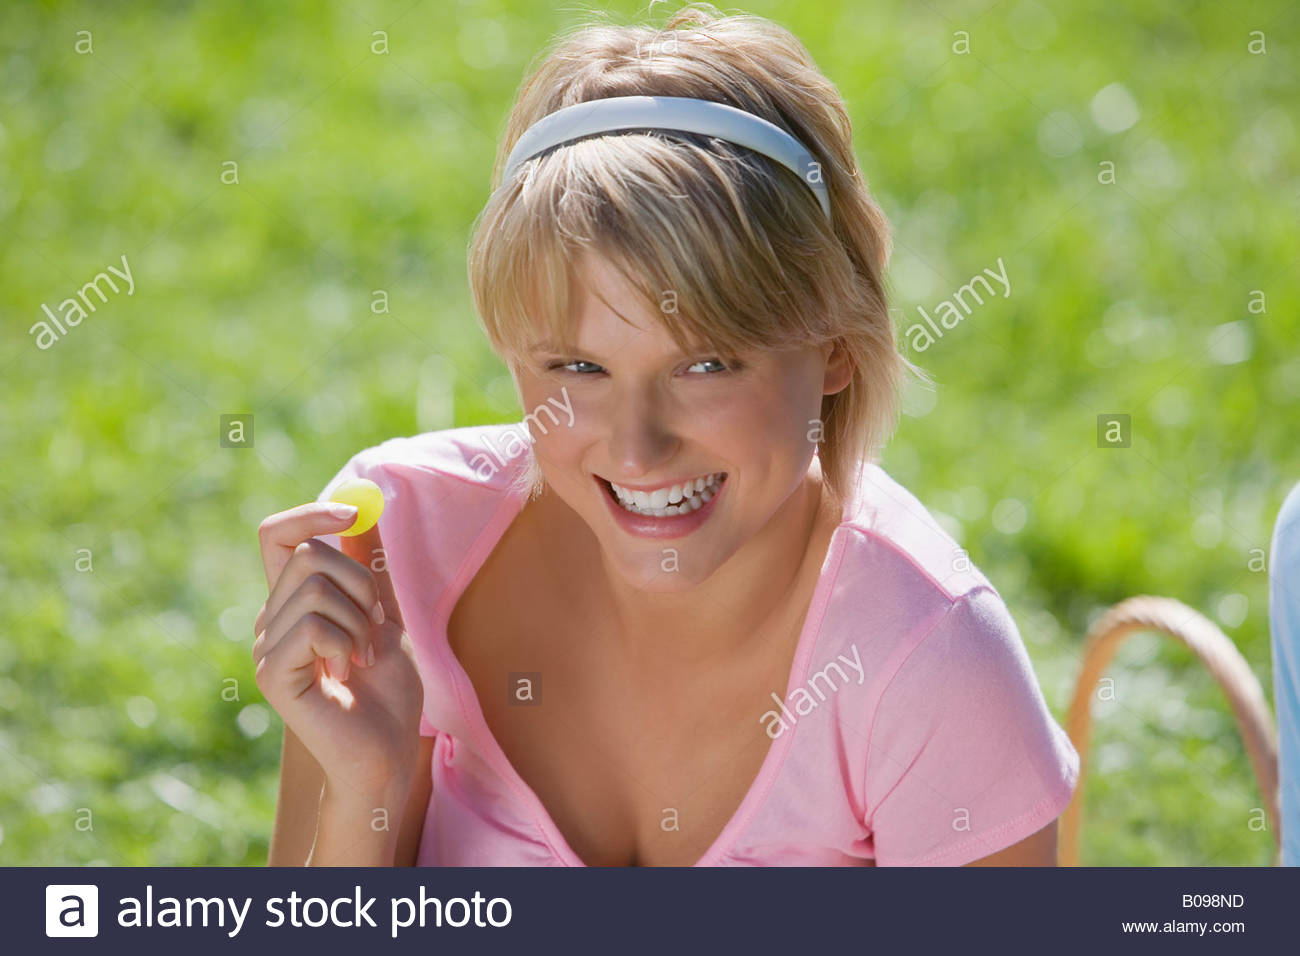 Young woman having a picnic and eating a grape, portrait - Stock Image